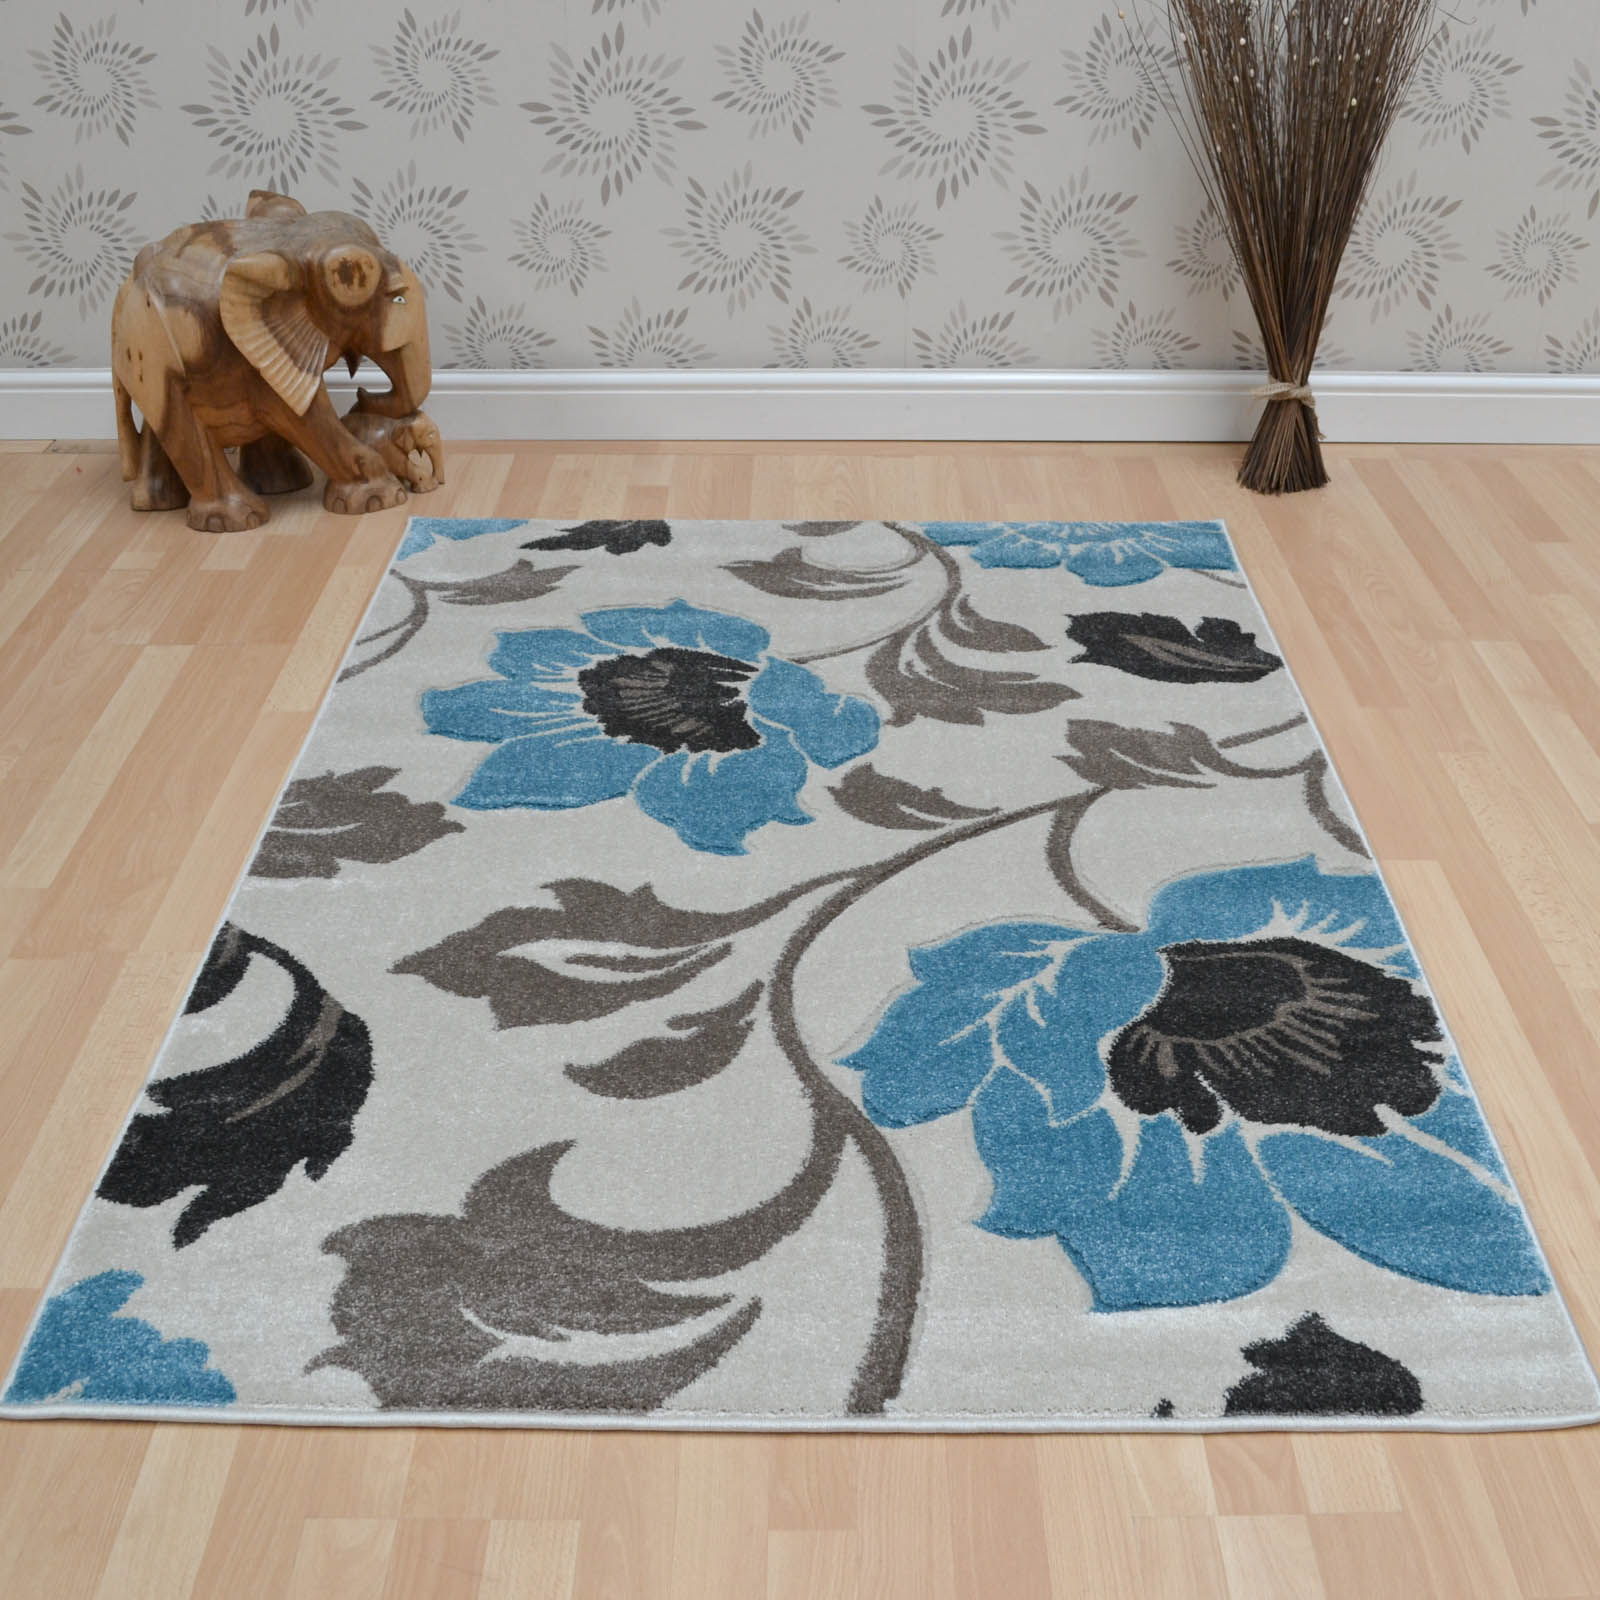 Vogue Floral Rugs VG32 in Beige and Blue